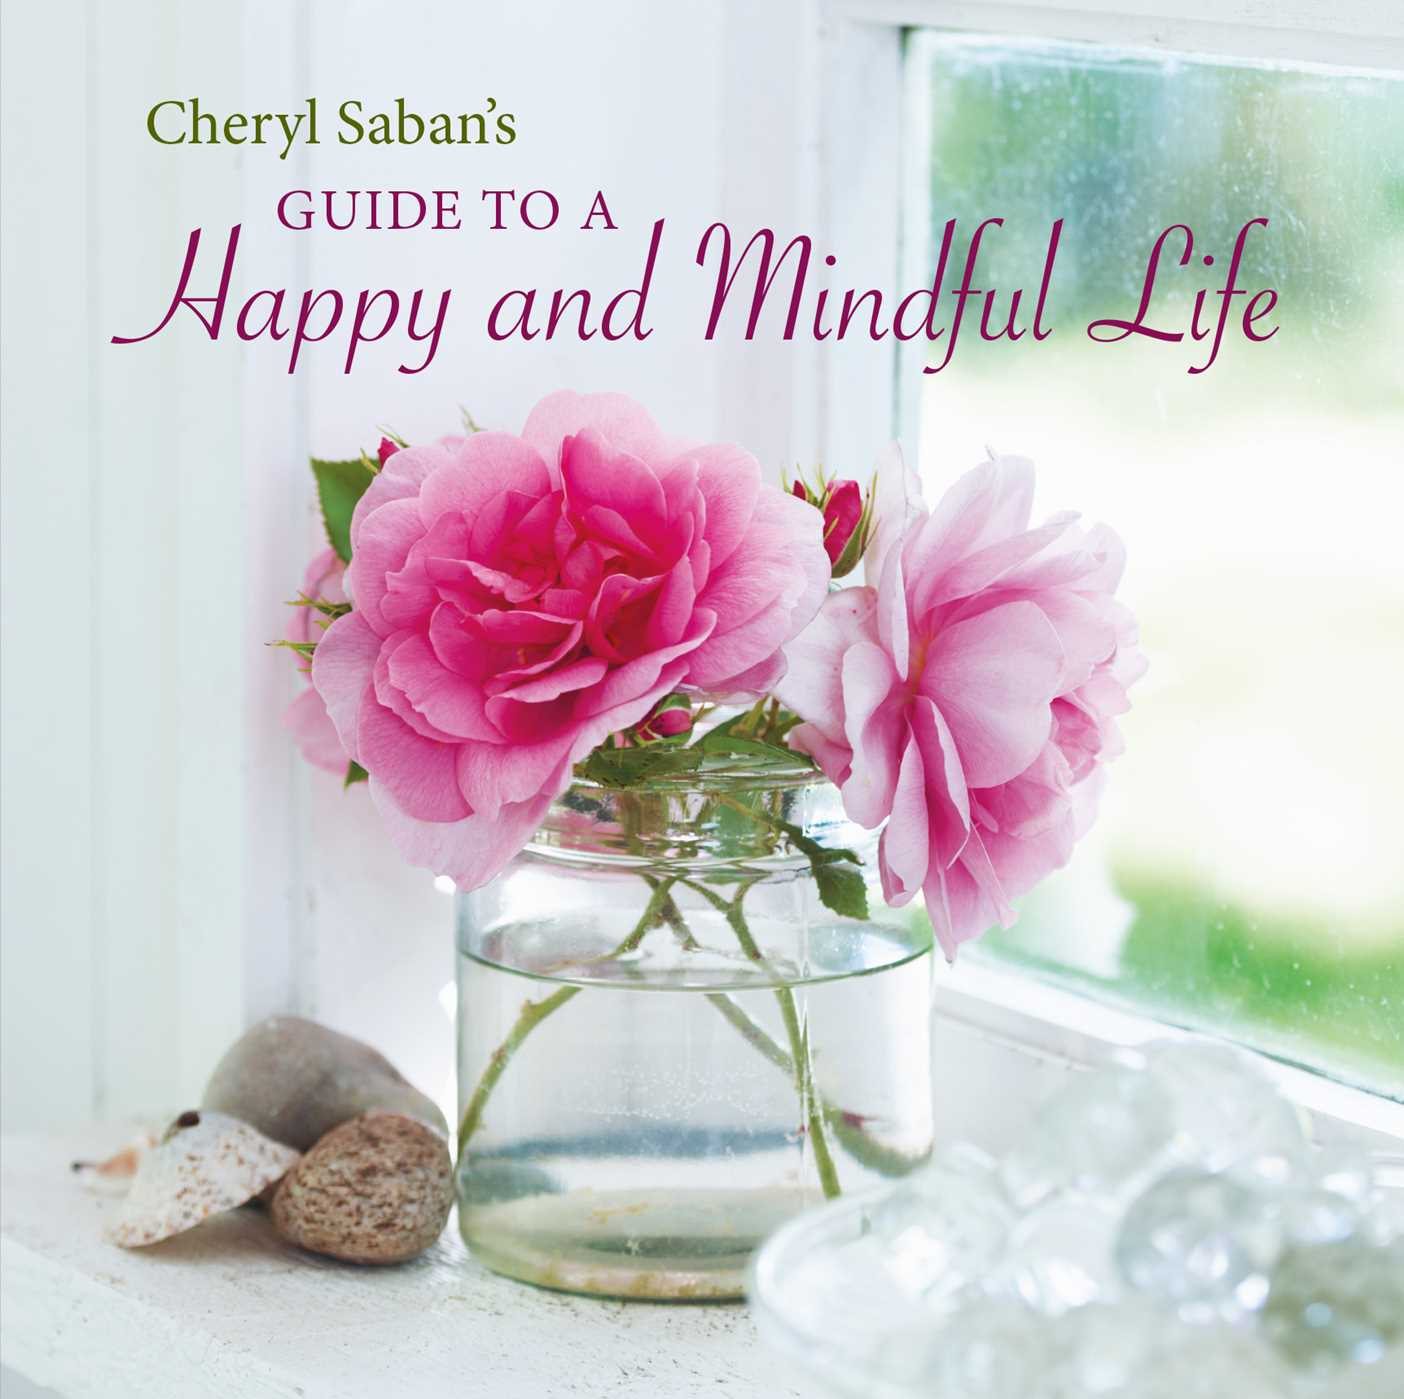 Cheryl sabans guide to a happy and mindful life 9781849758642 hr